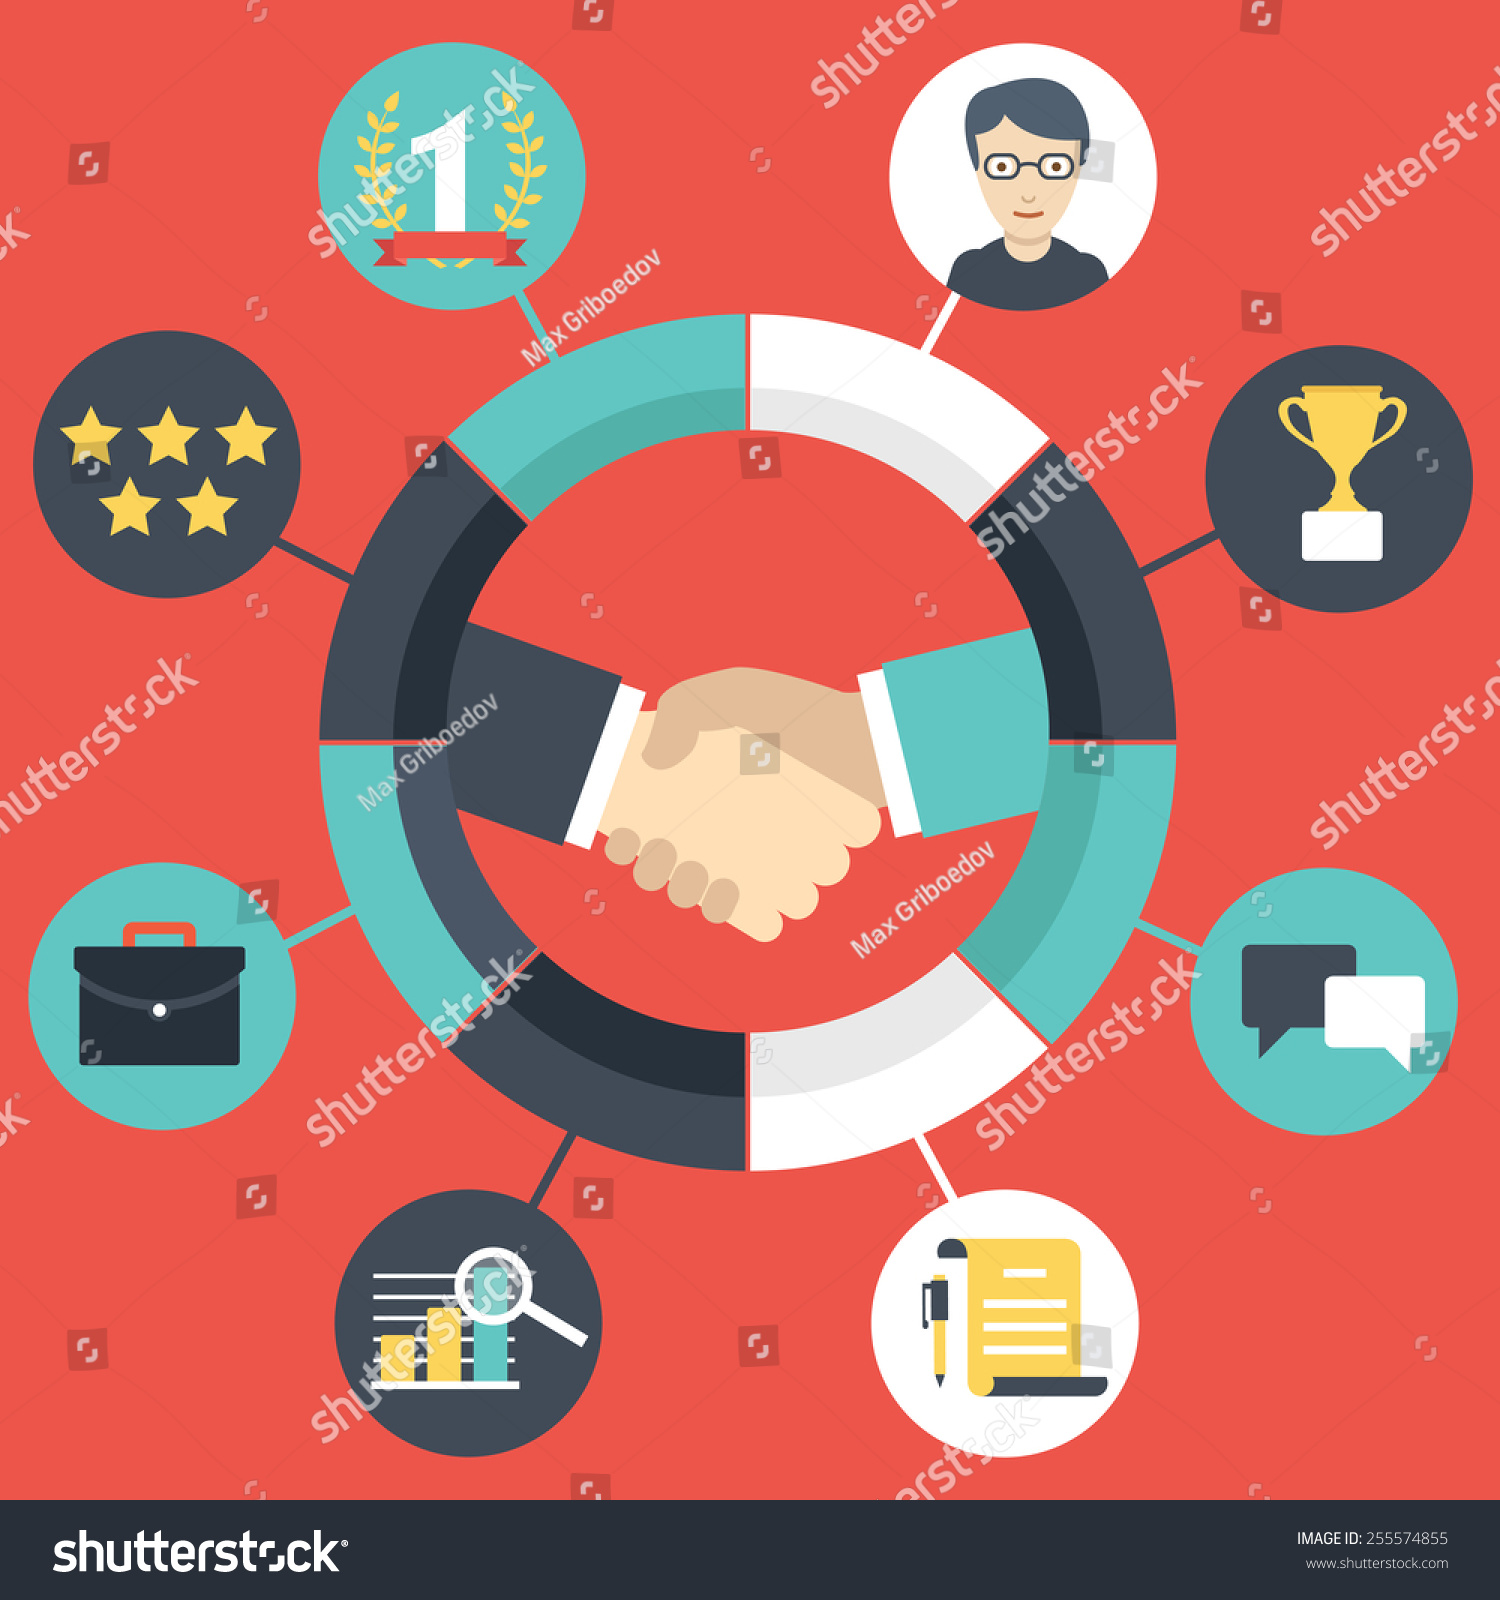 Customer Relationship Management Vector Illustration Stock Vector ...